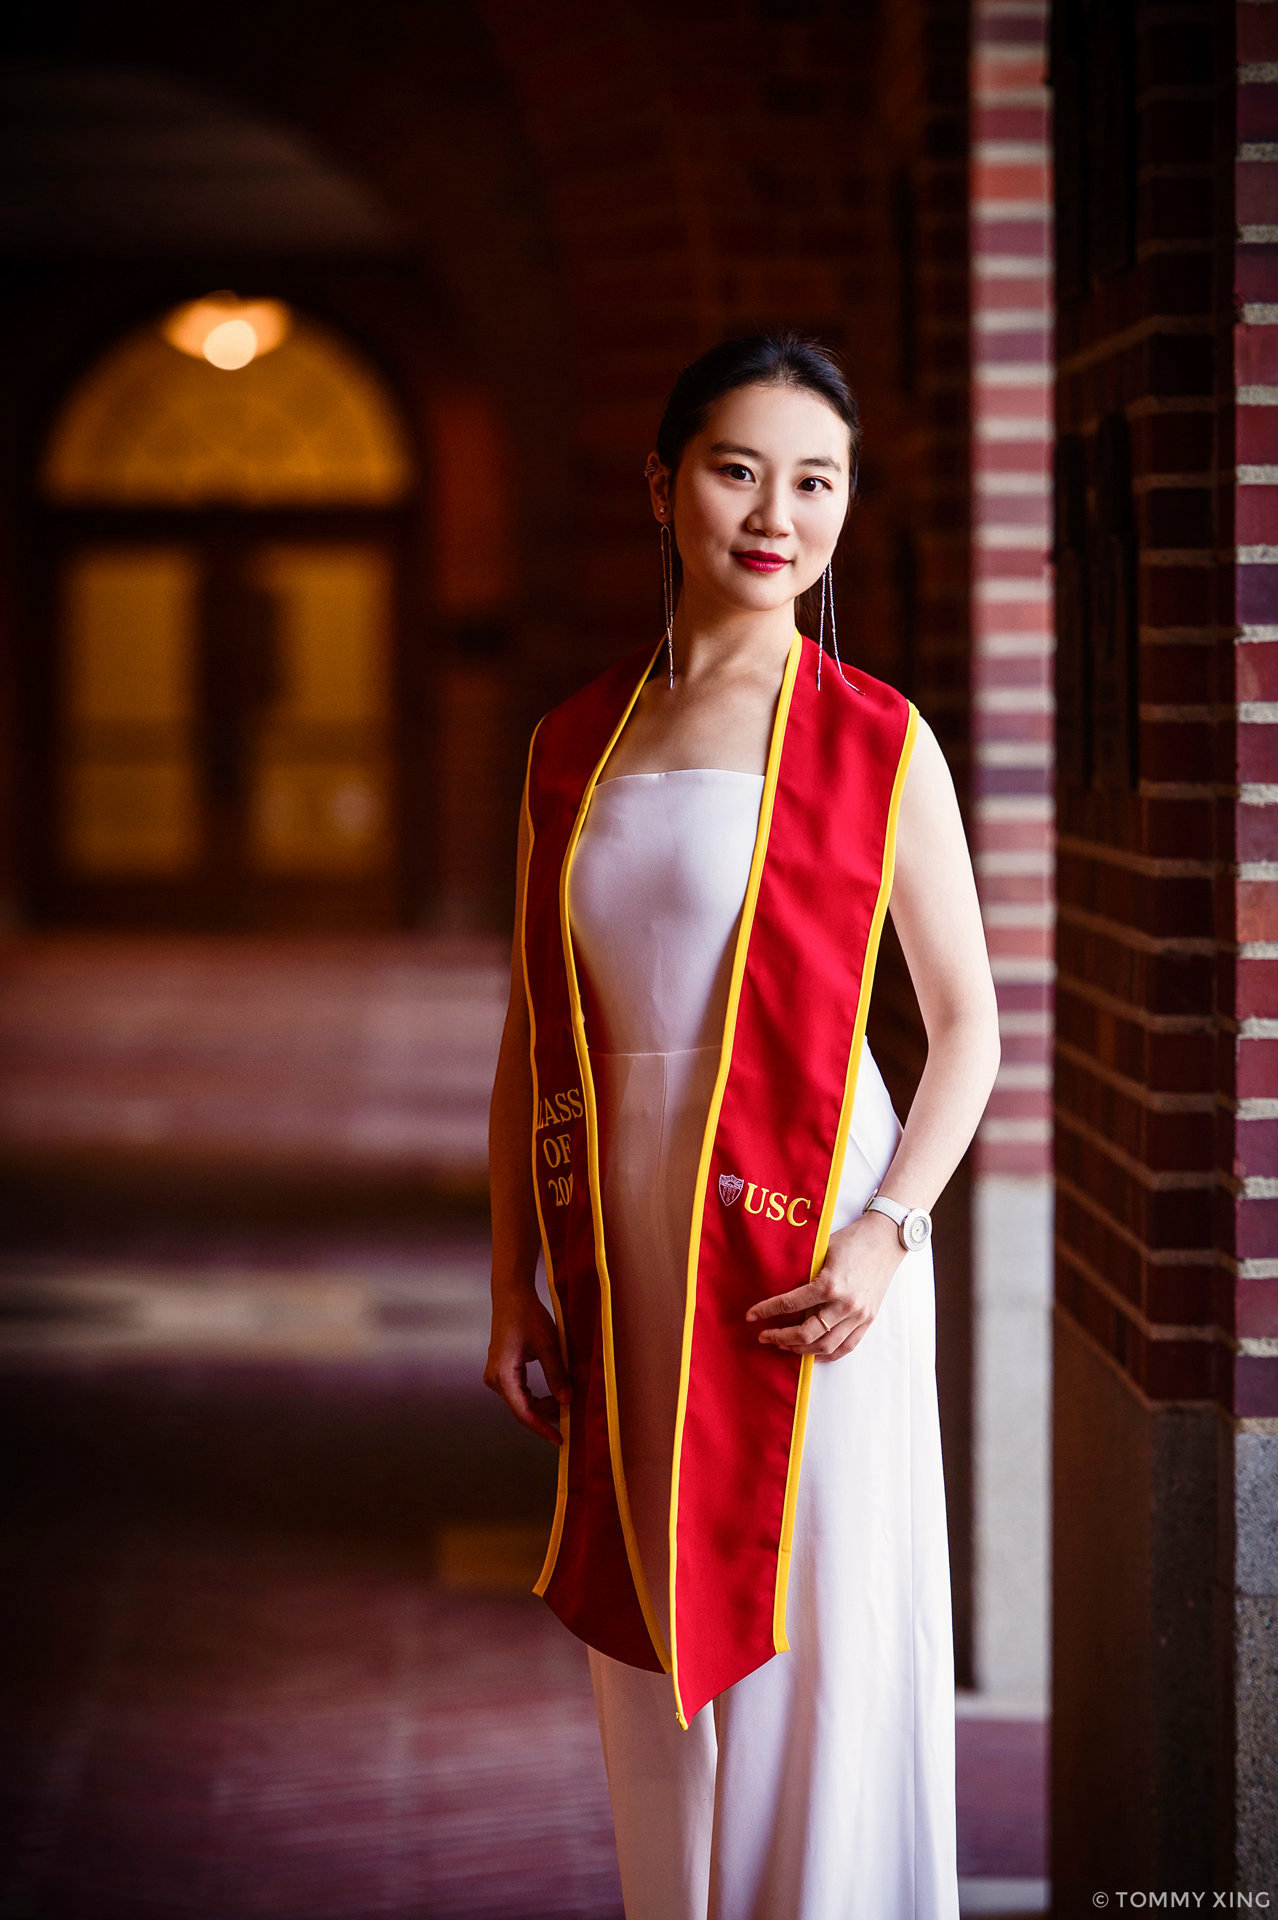 Graduation Pictures Los Angeles USC UCLA - Tommy Xing Photography 15.jpg